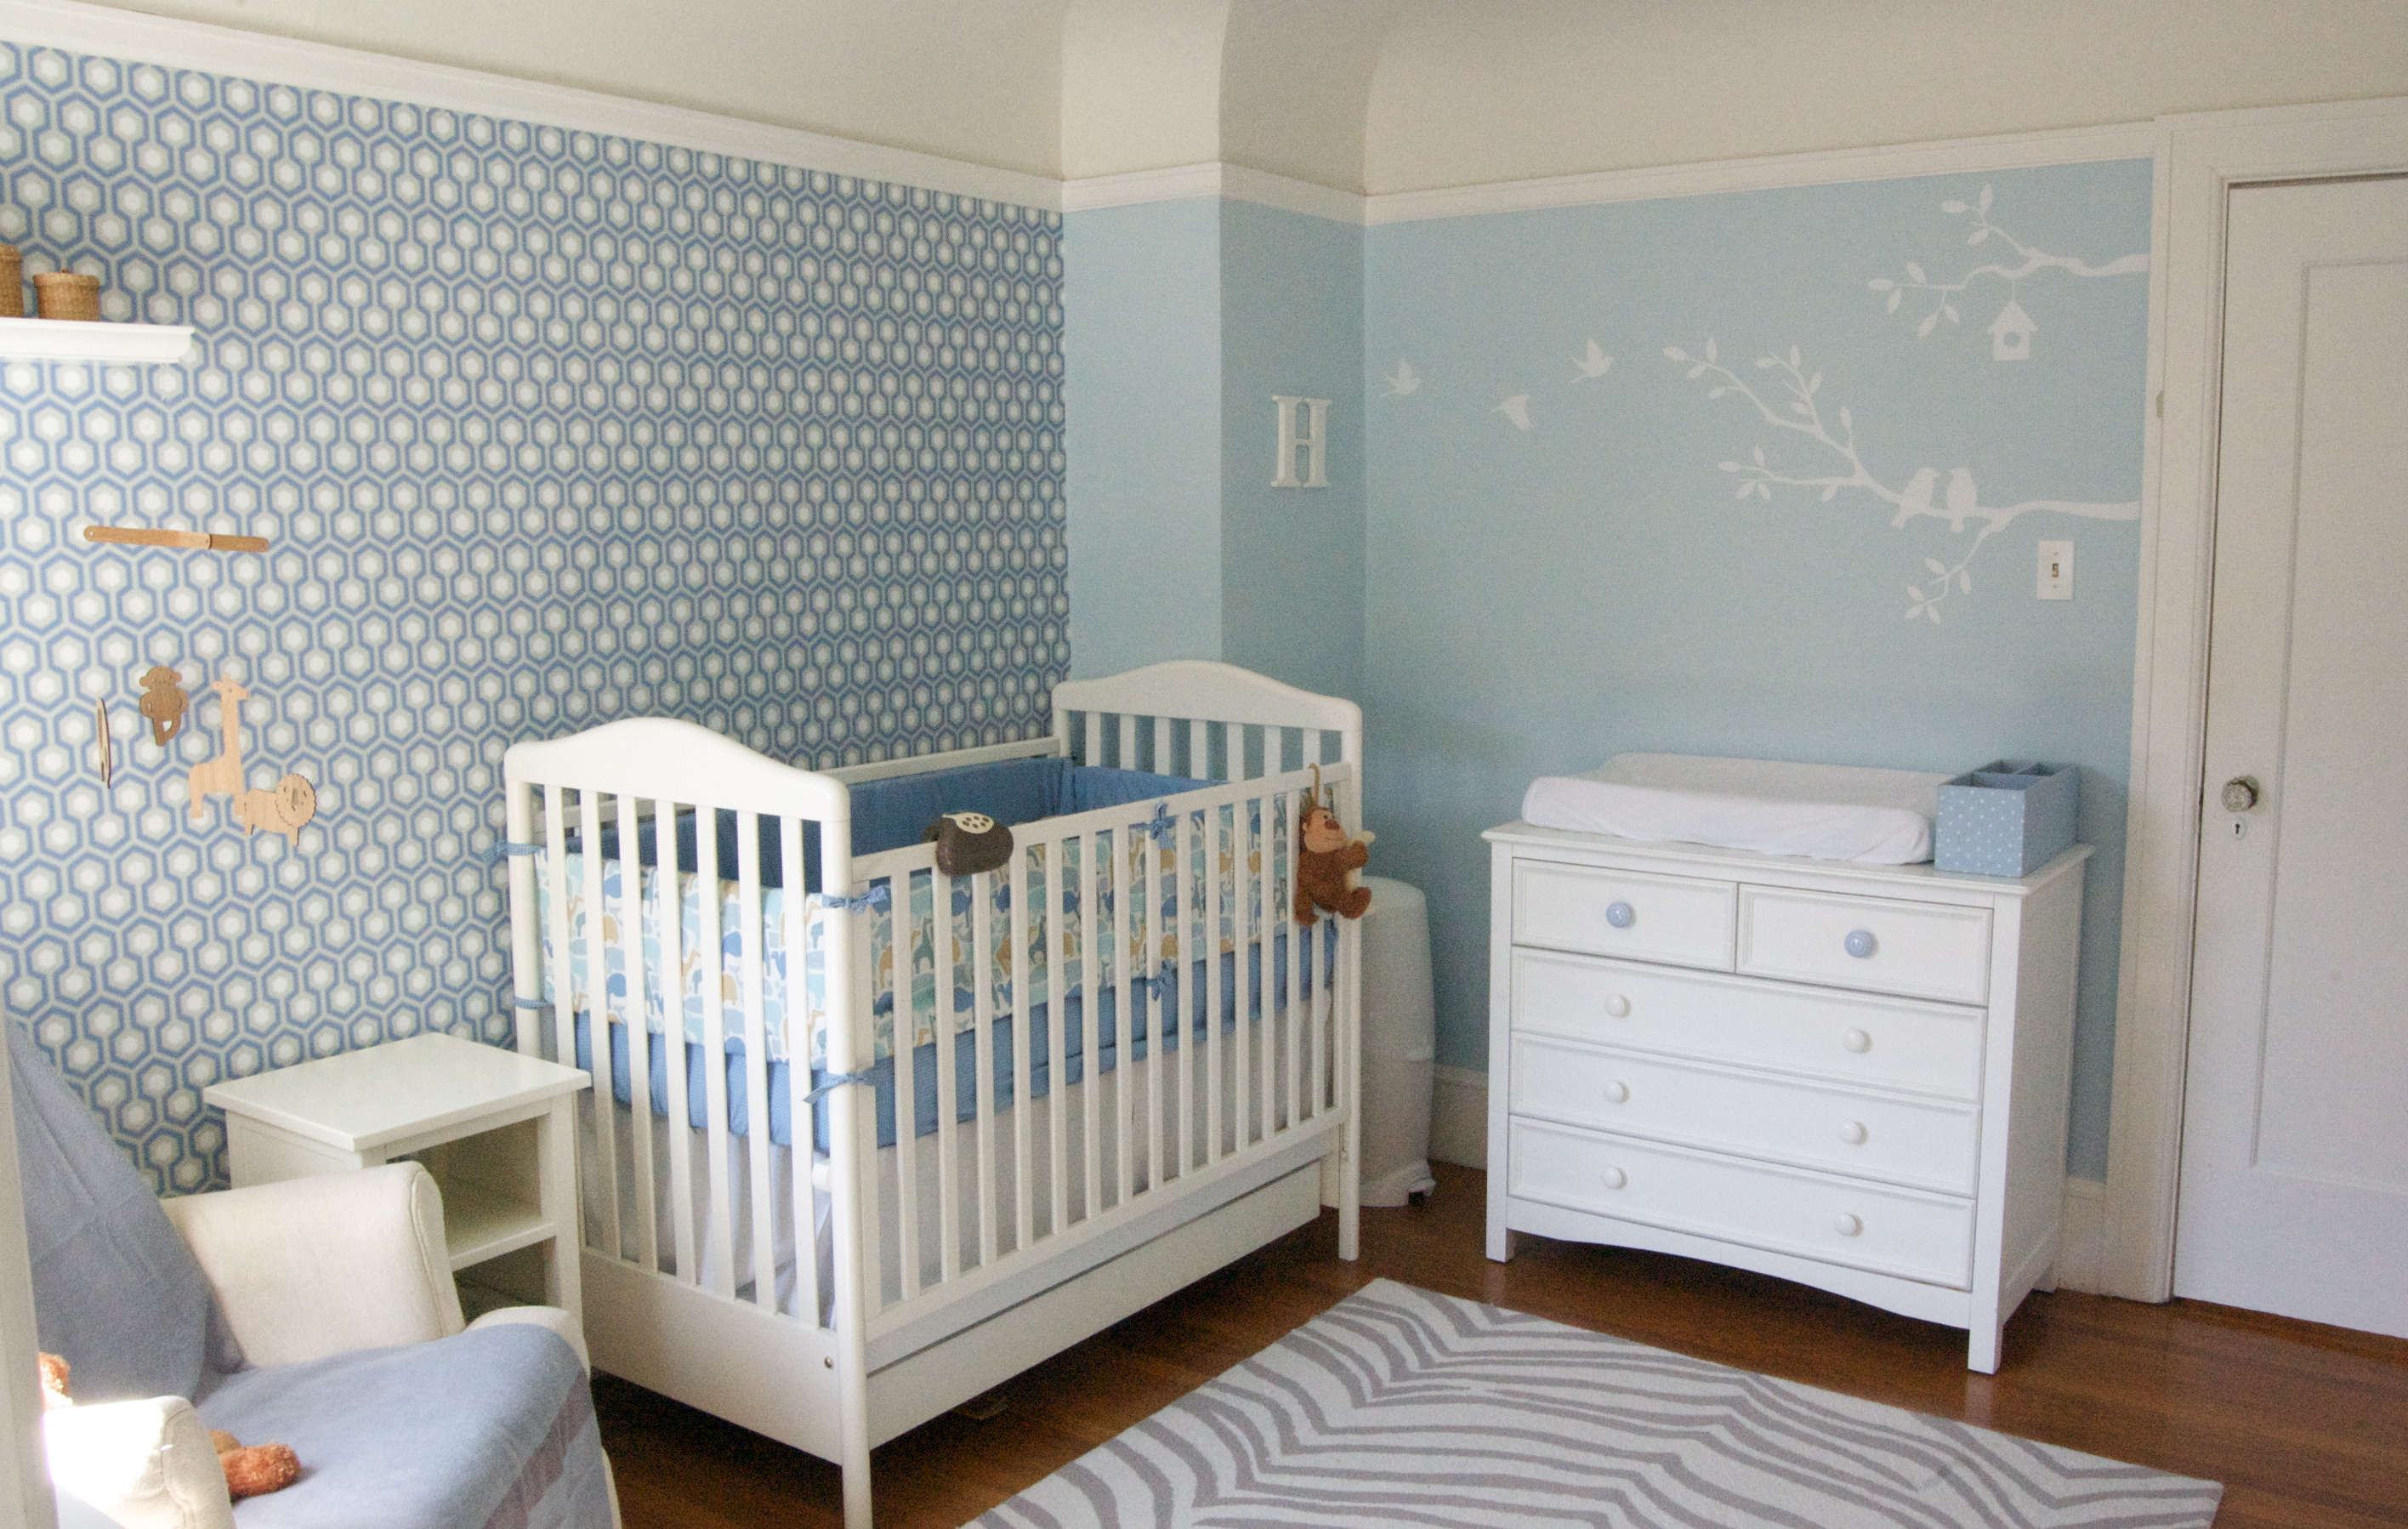 1000 images about baby room ideas on pinterest for Baby room decoration pictures